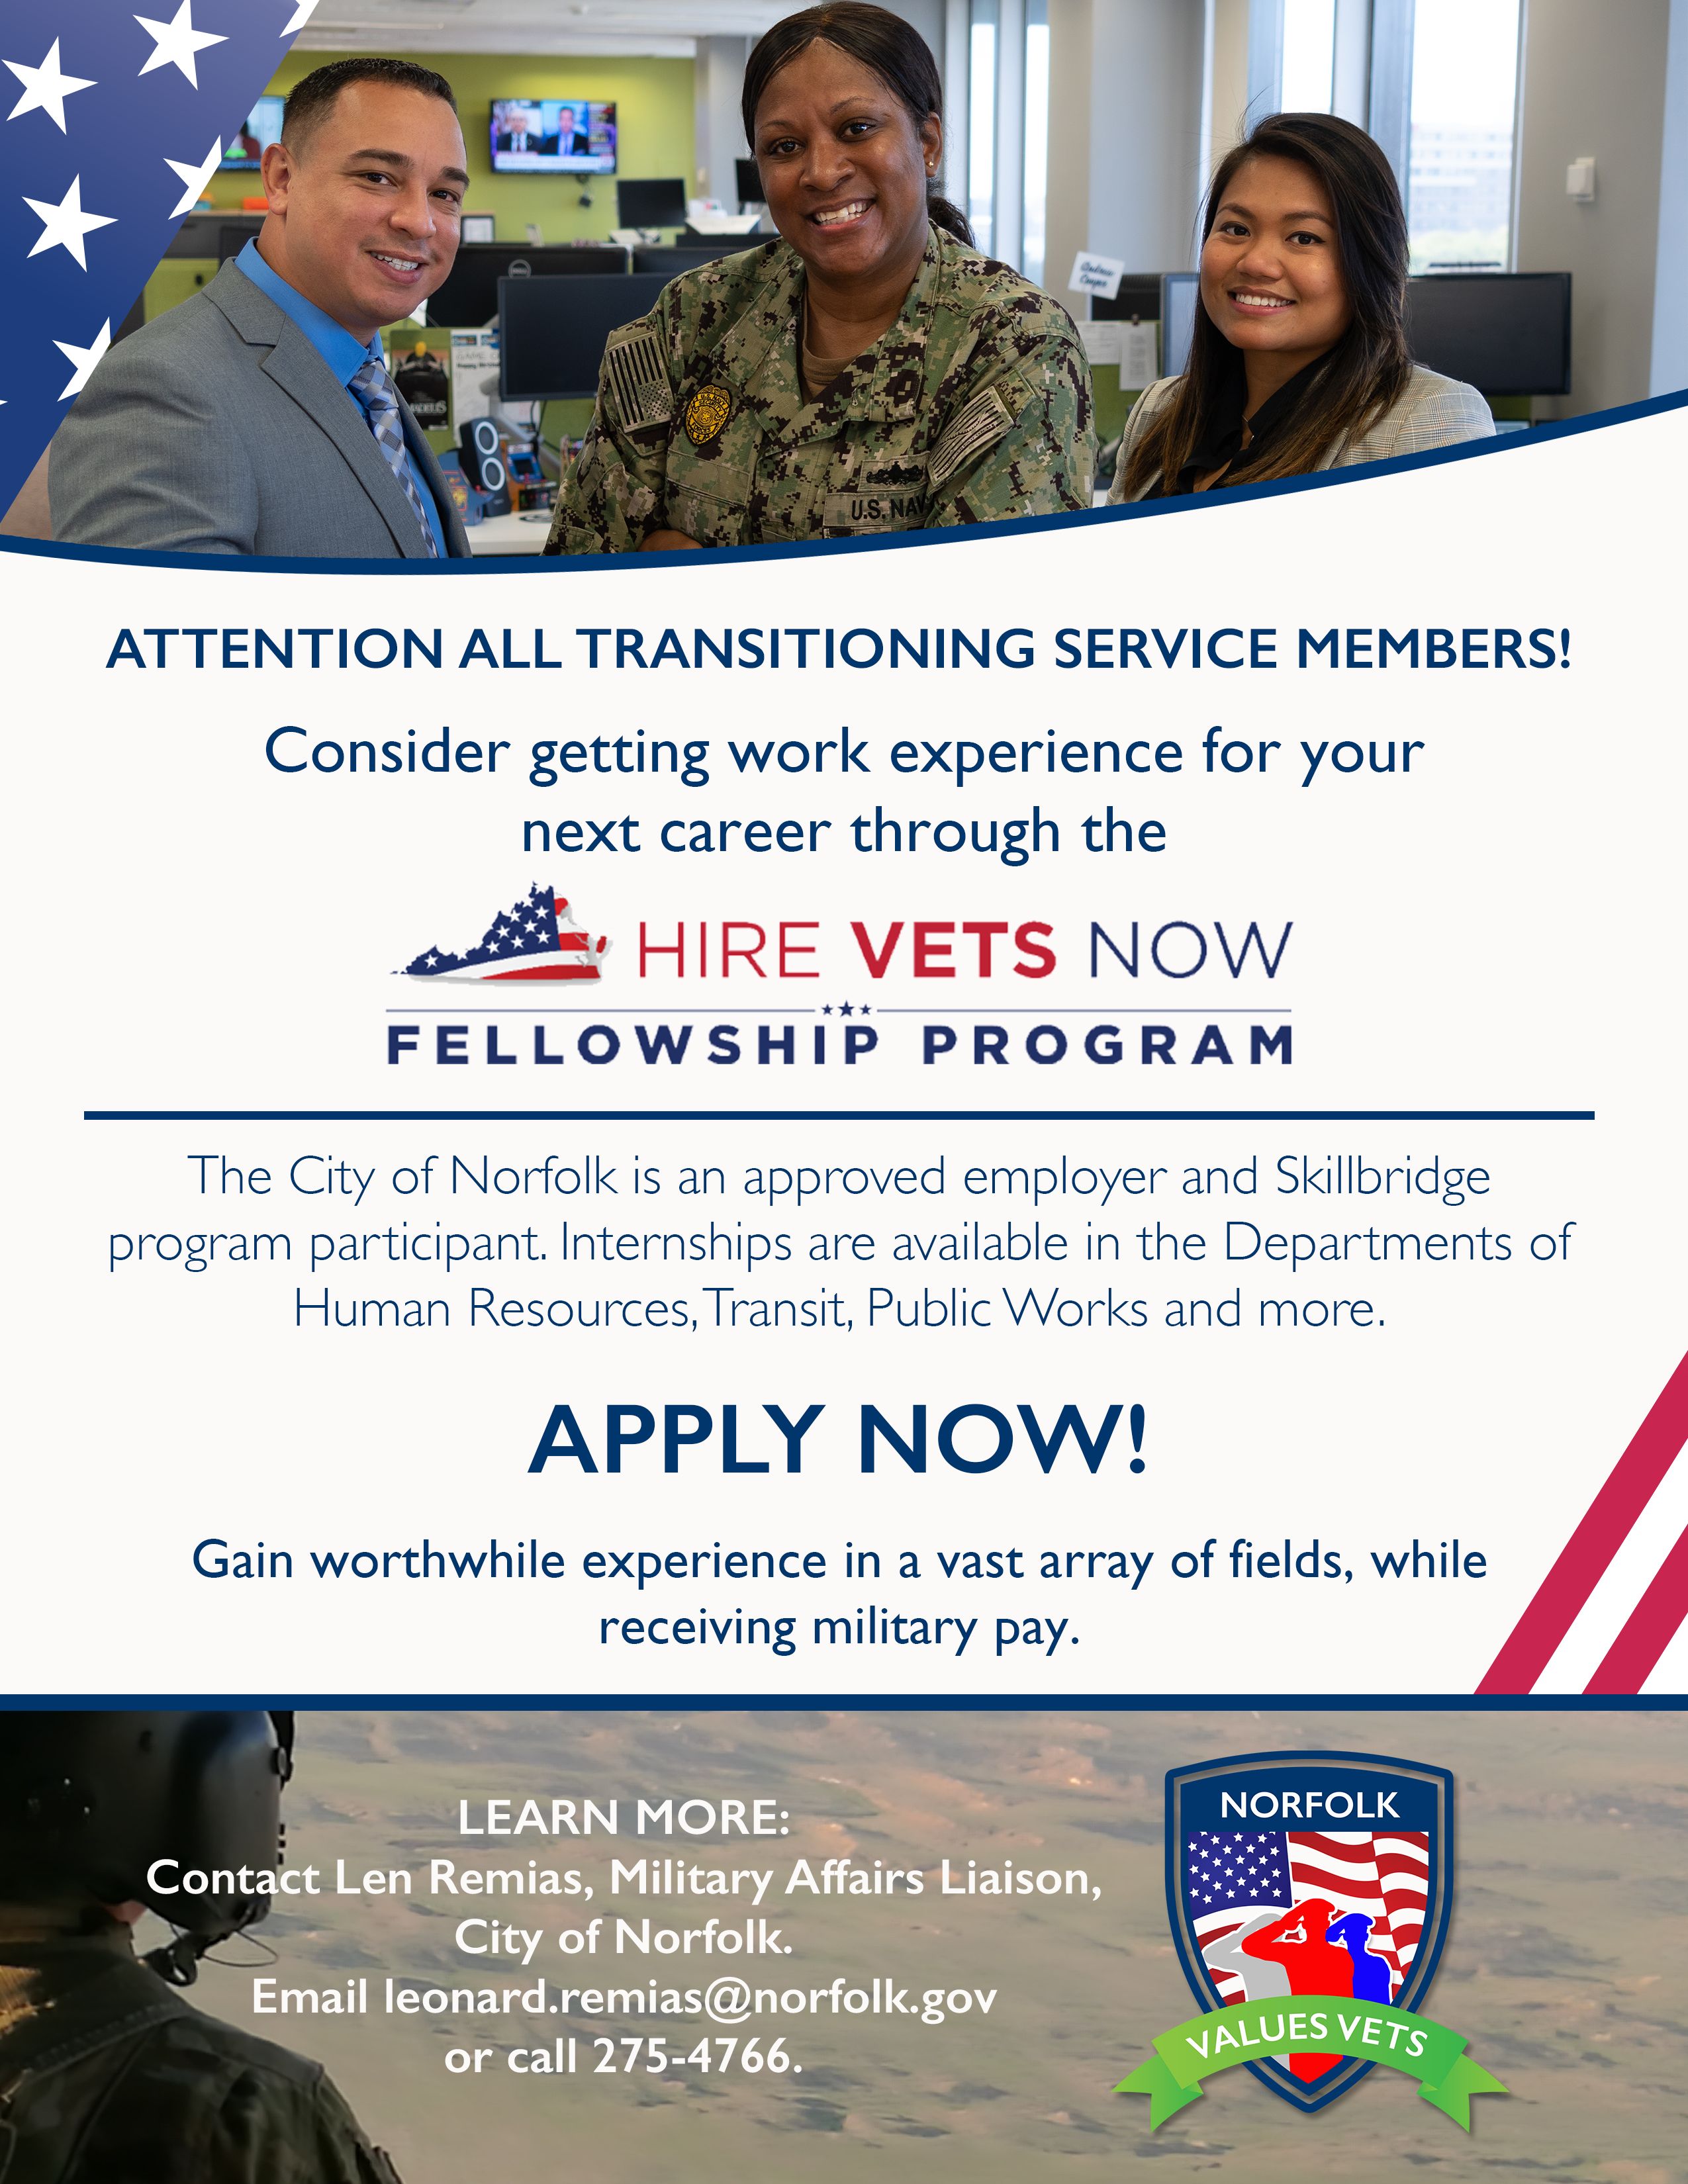 Hire Vets Now Service Member Flyer Image